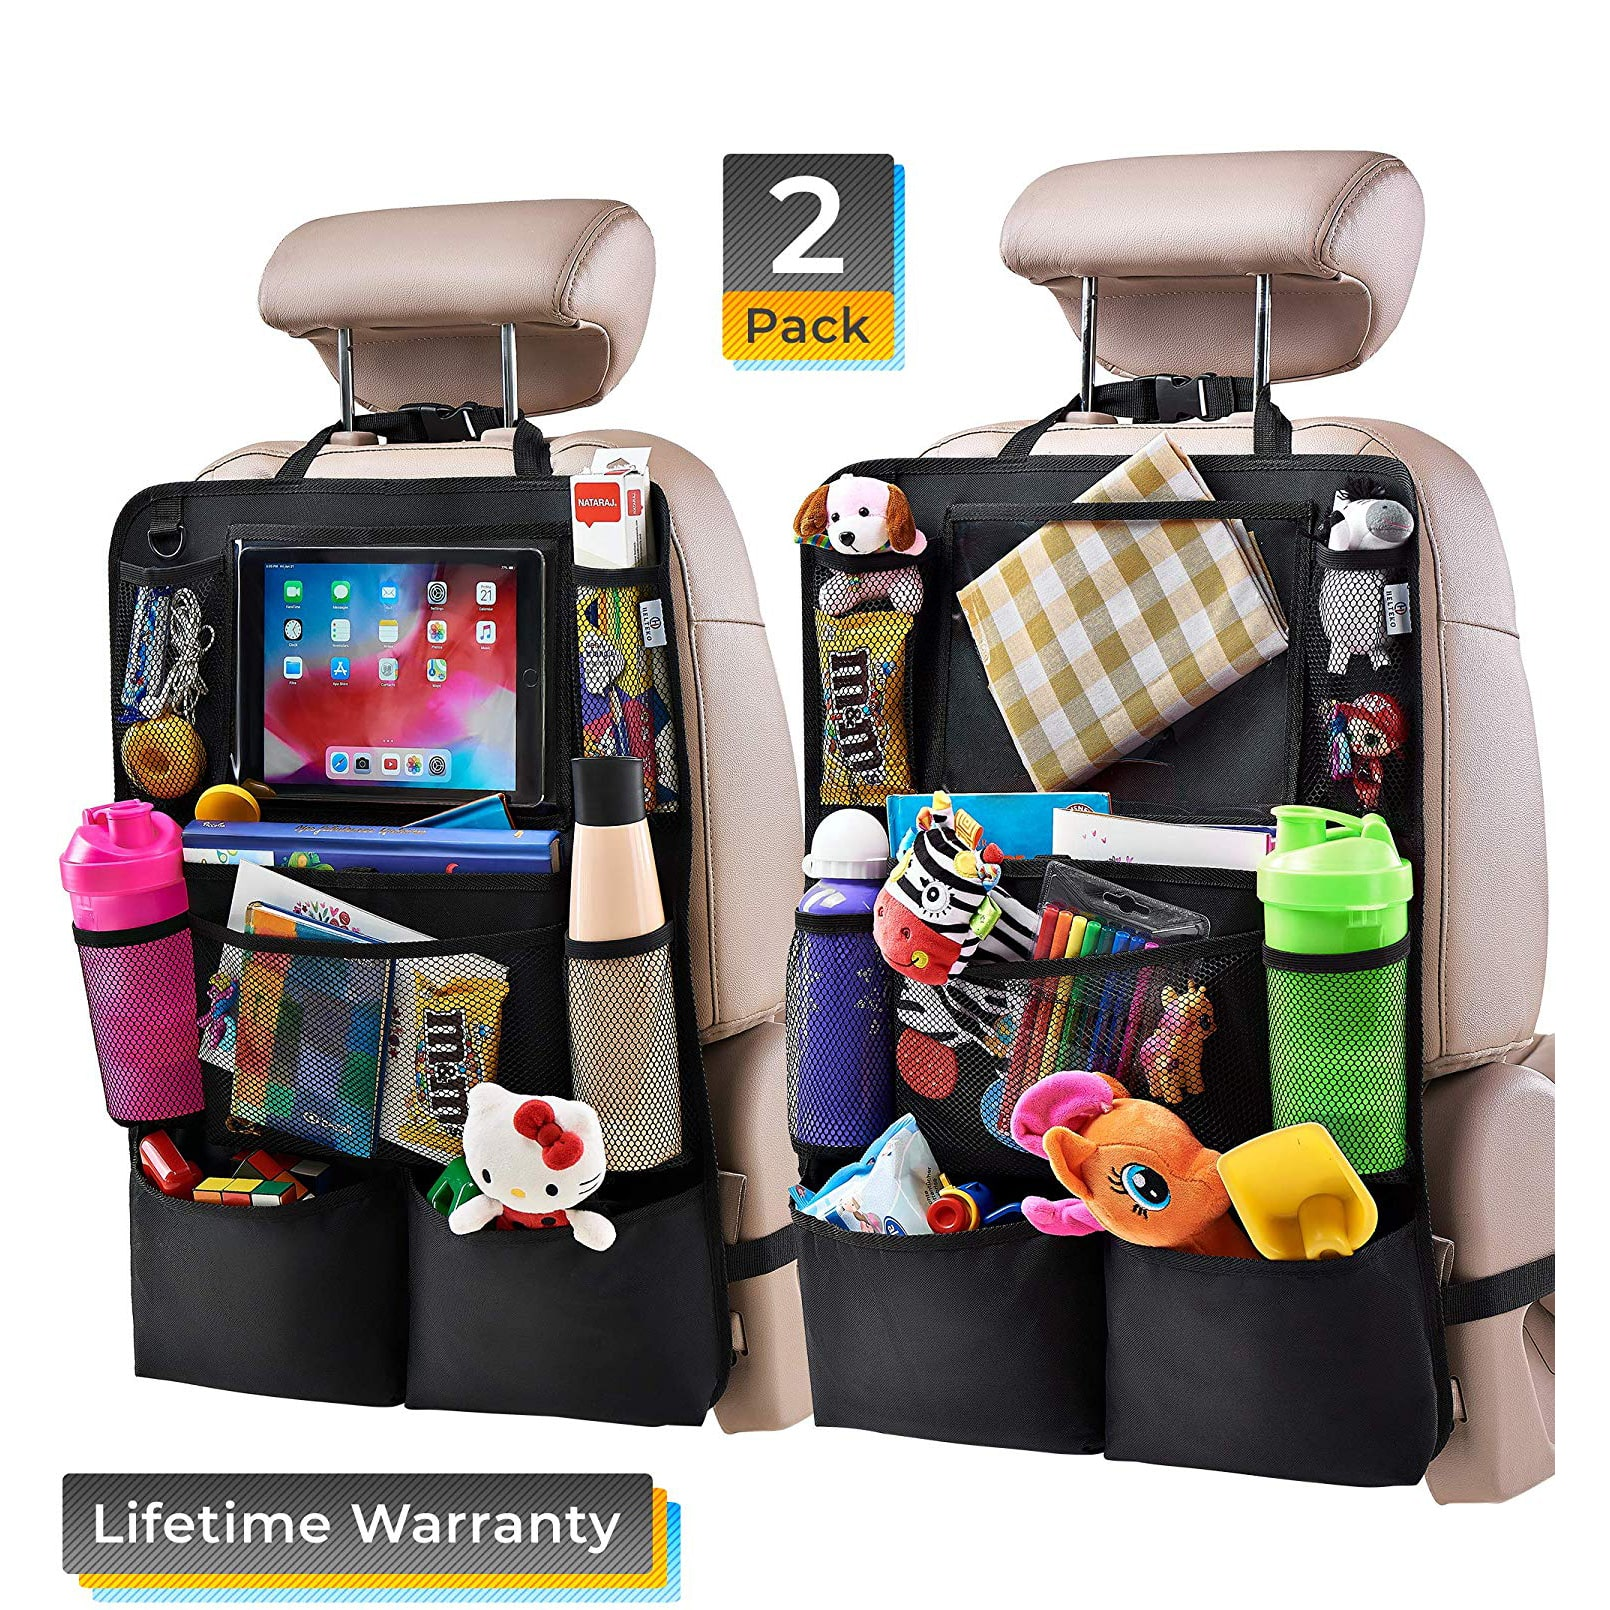 H Helteko Backseat Car Organizer with Eight Storage Pockets (2 Pack)